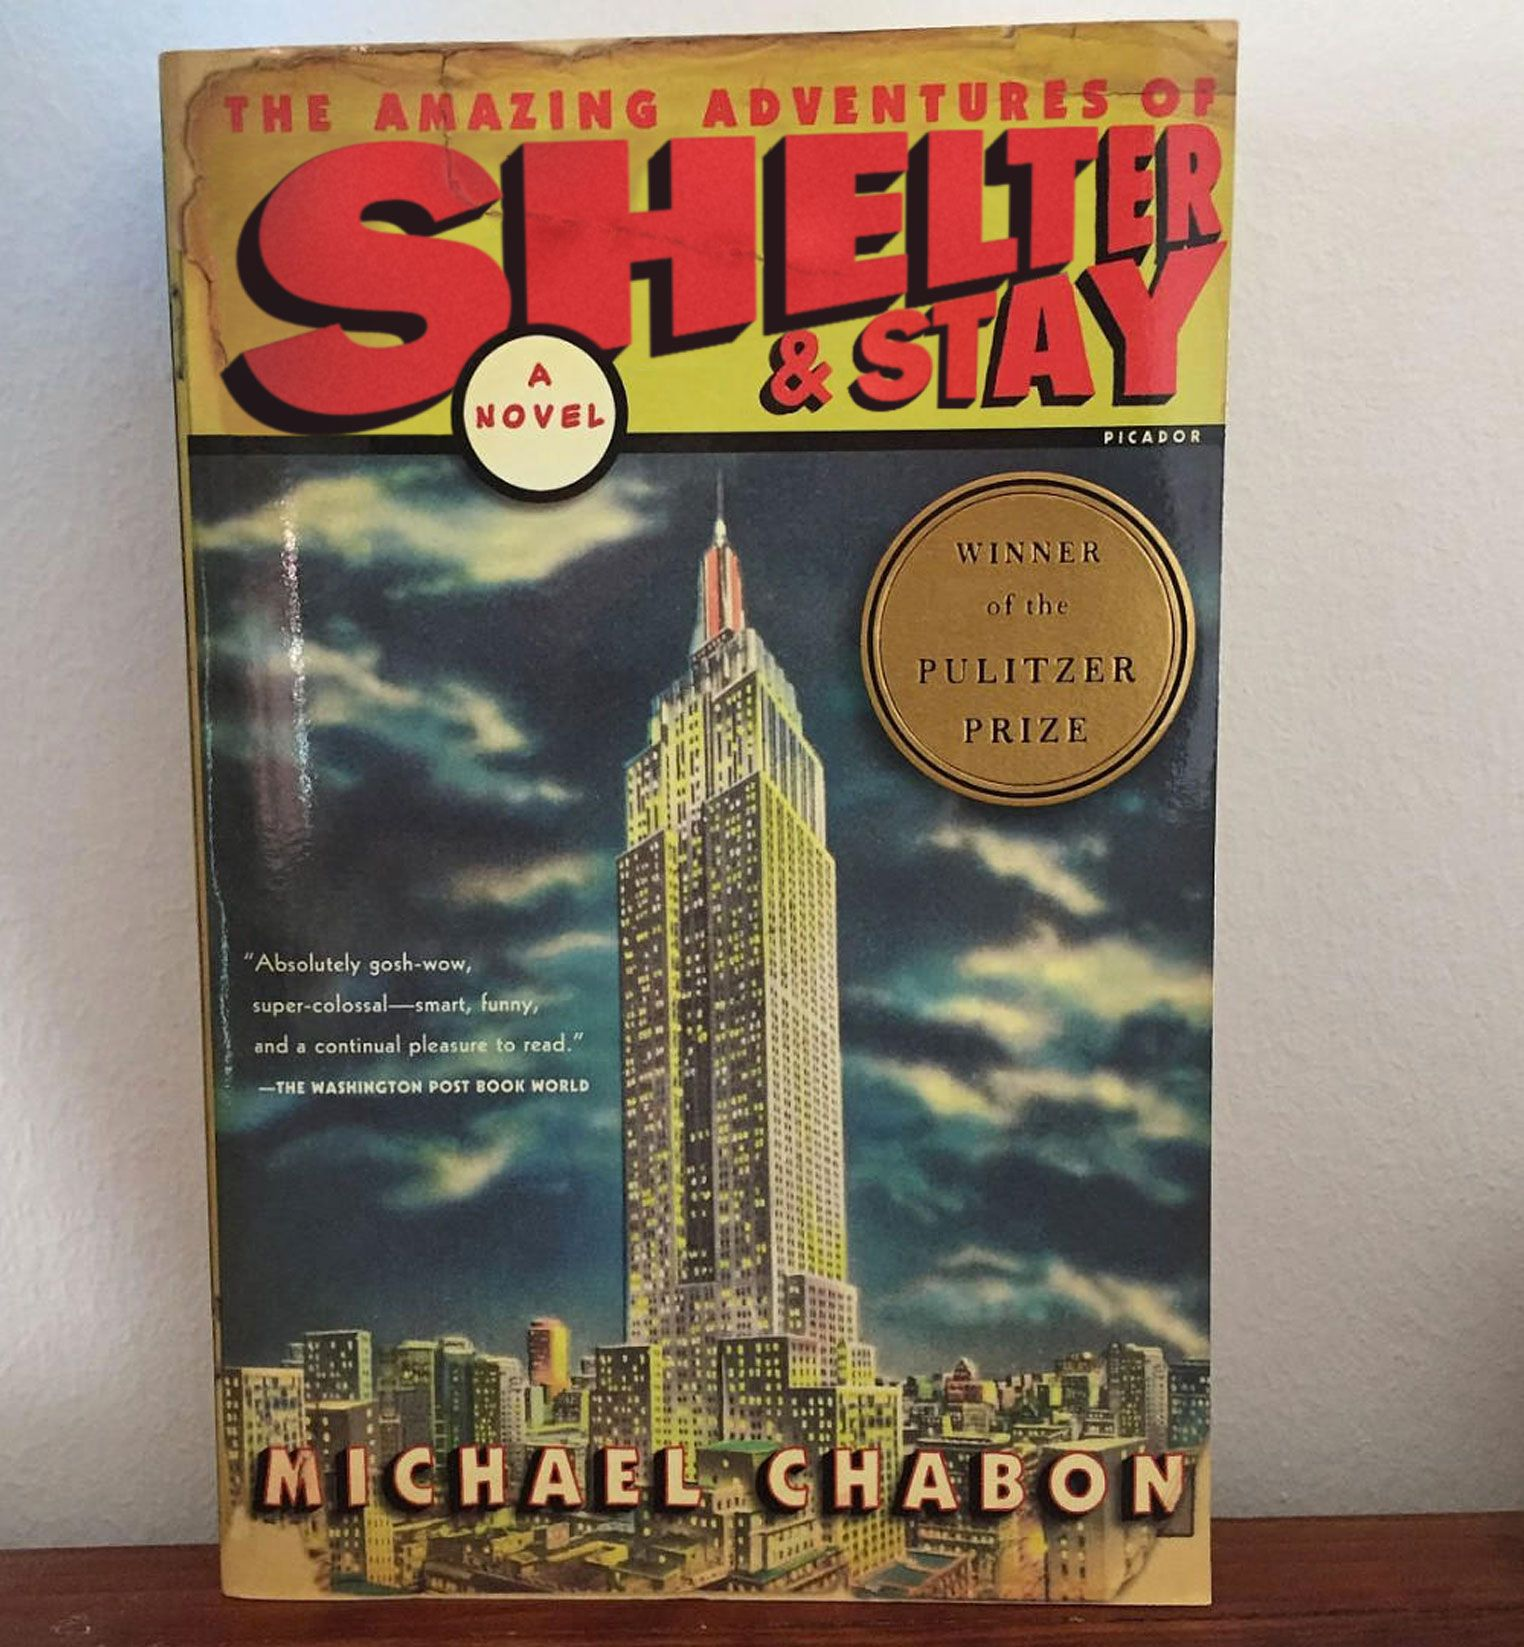 The Amazing Adventures of Shelter & Stay (The Amazing Adventure of Kavalier & Clay, by Michael Chabon)